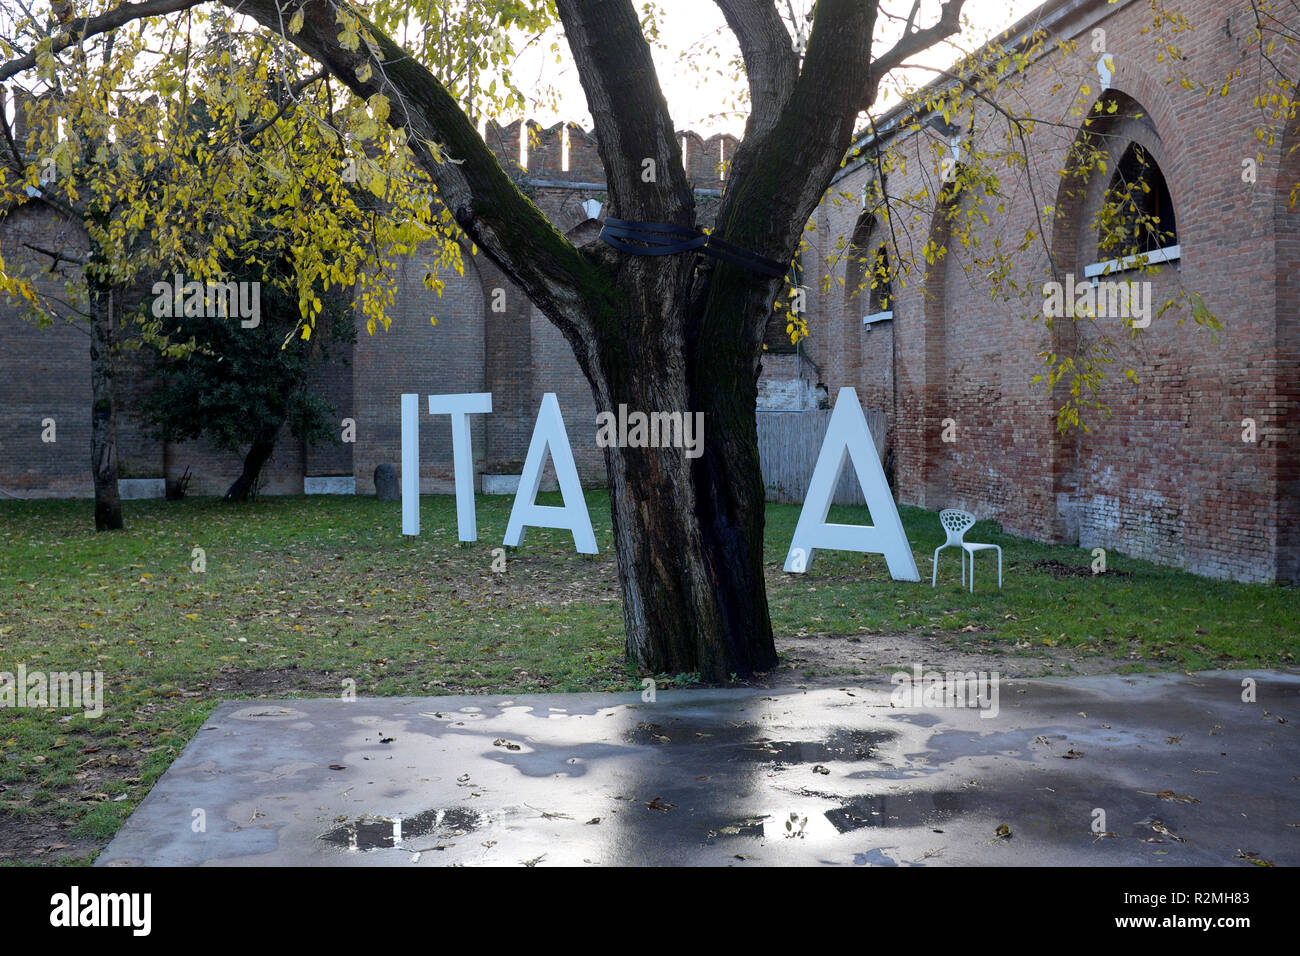 Art at the Venice Biennale - Stock Image